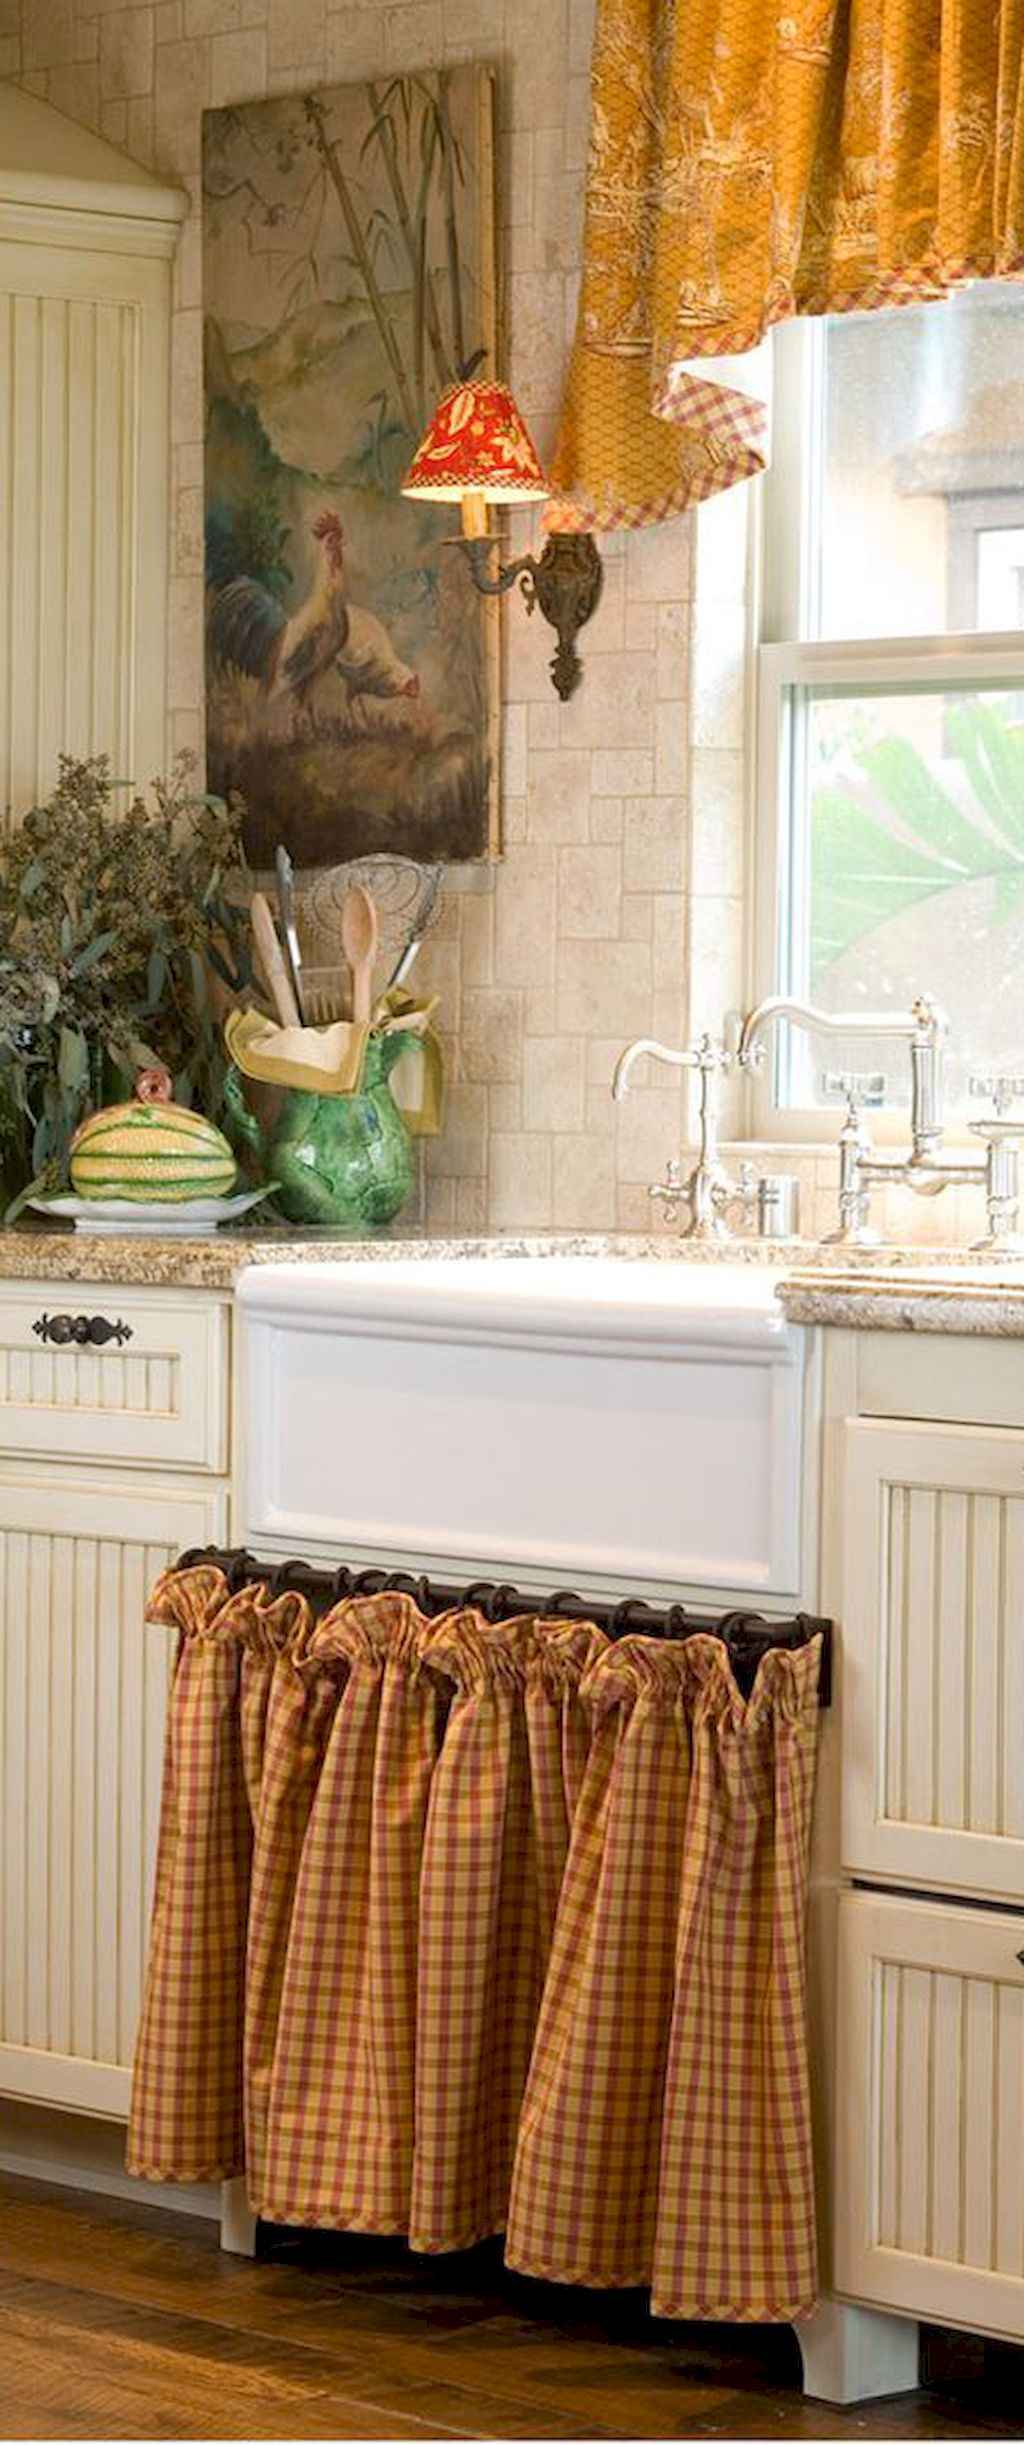 Incredible french country kitchen design ideas (13)